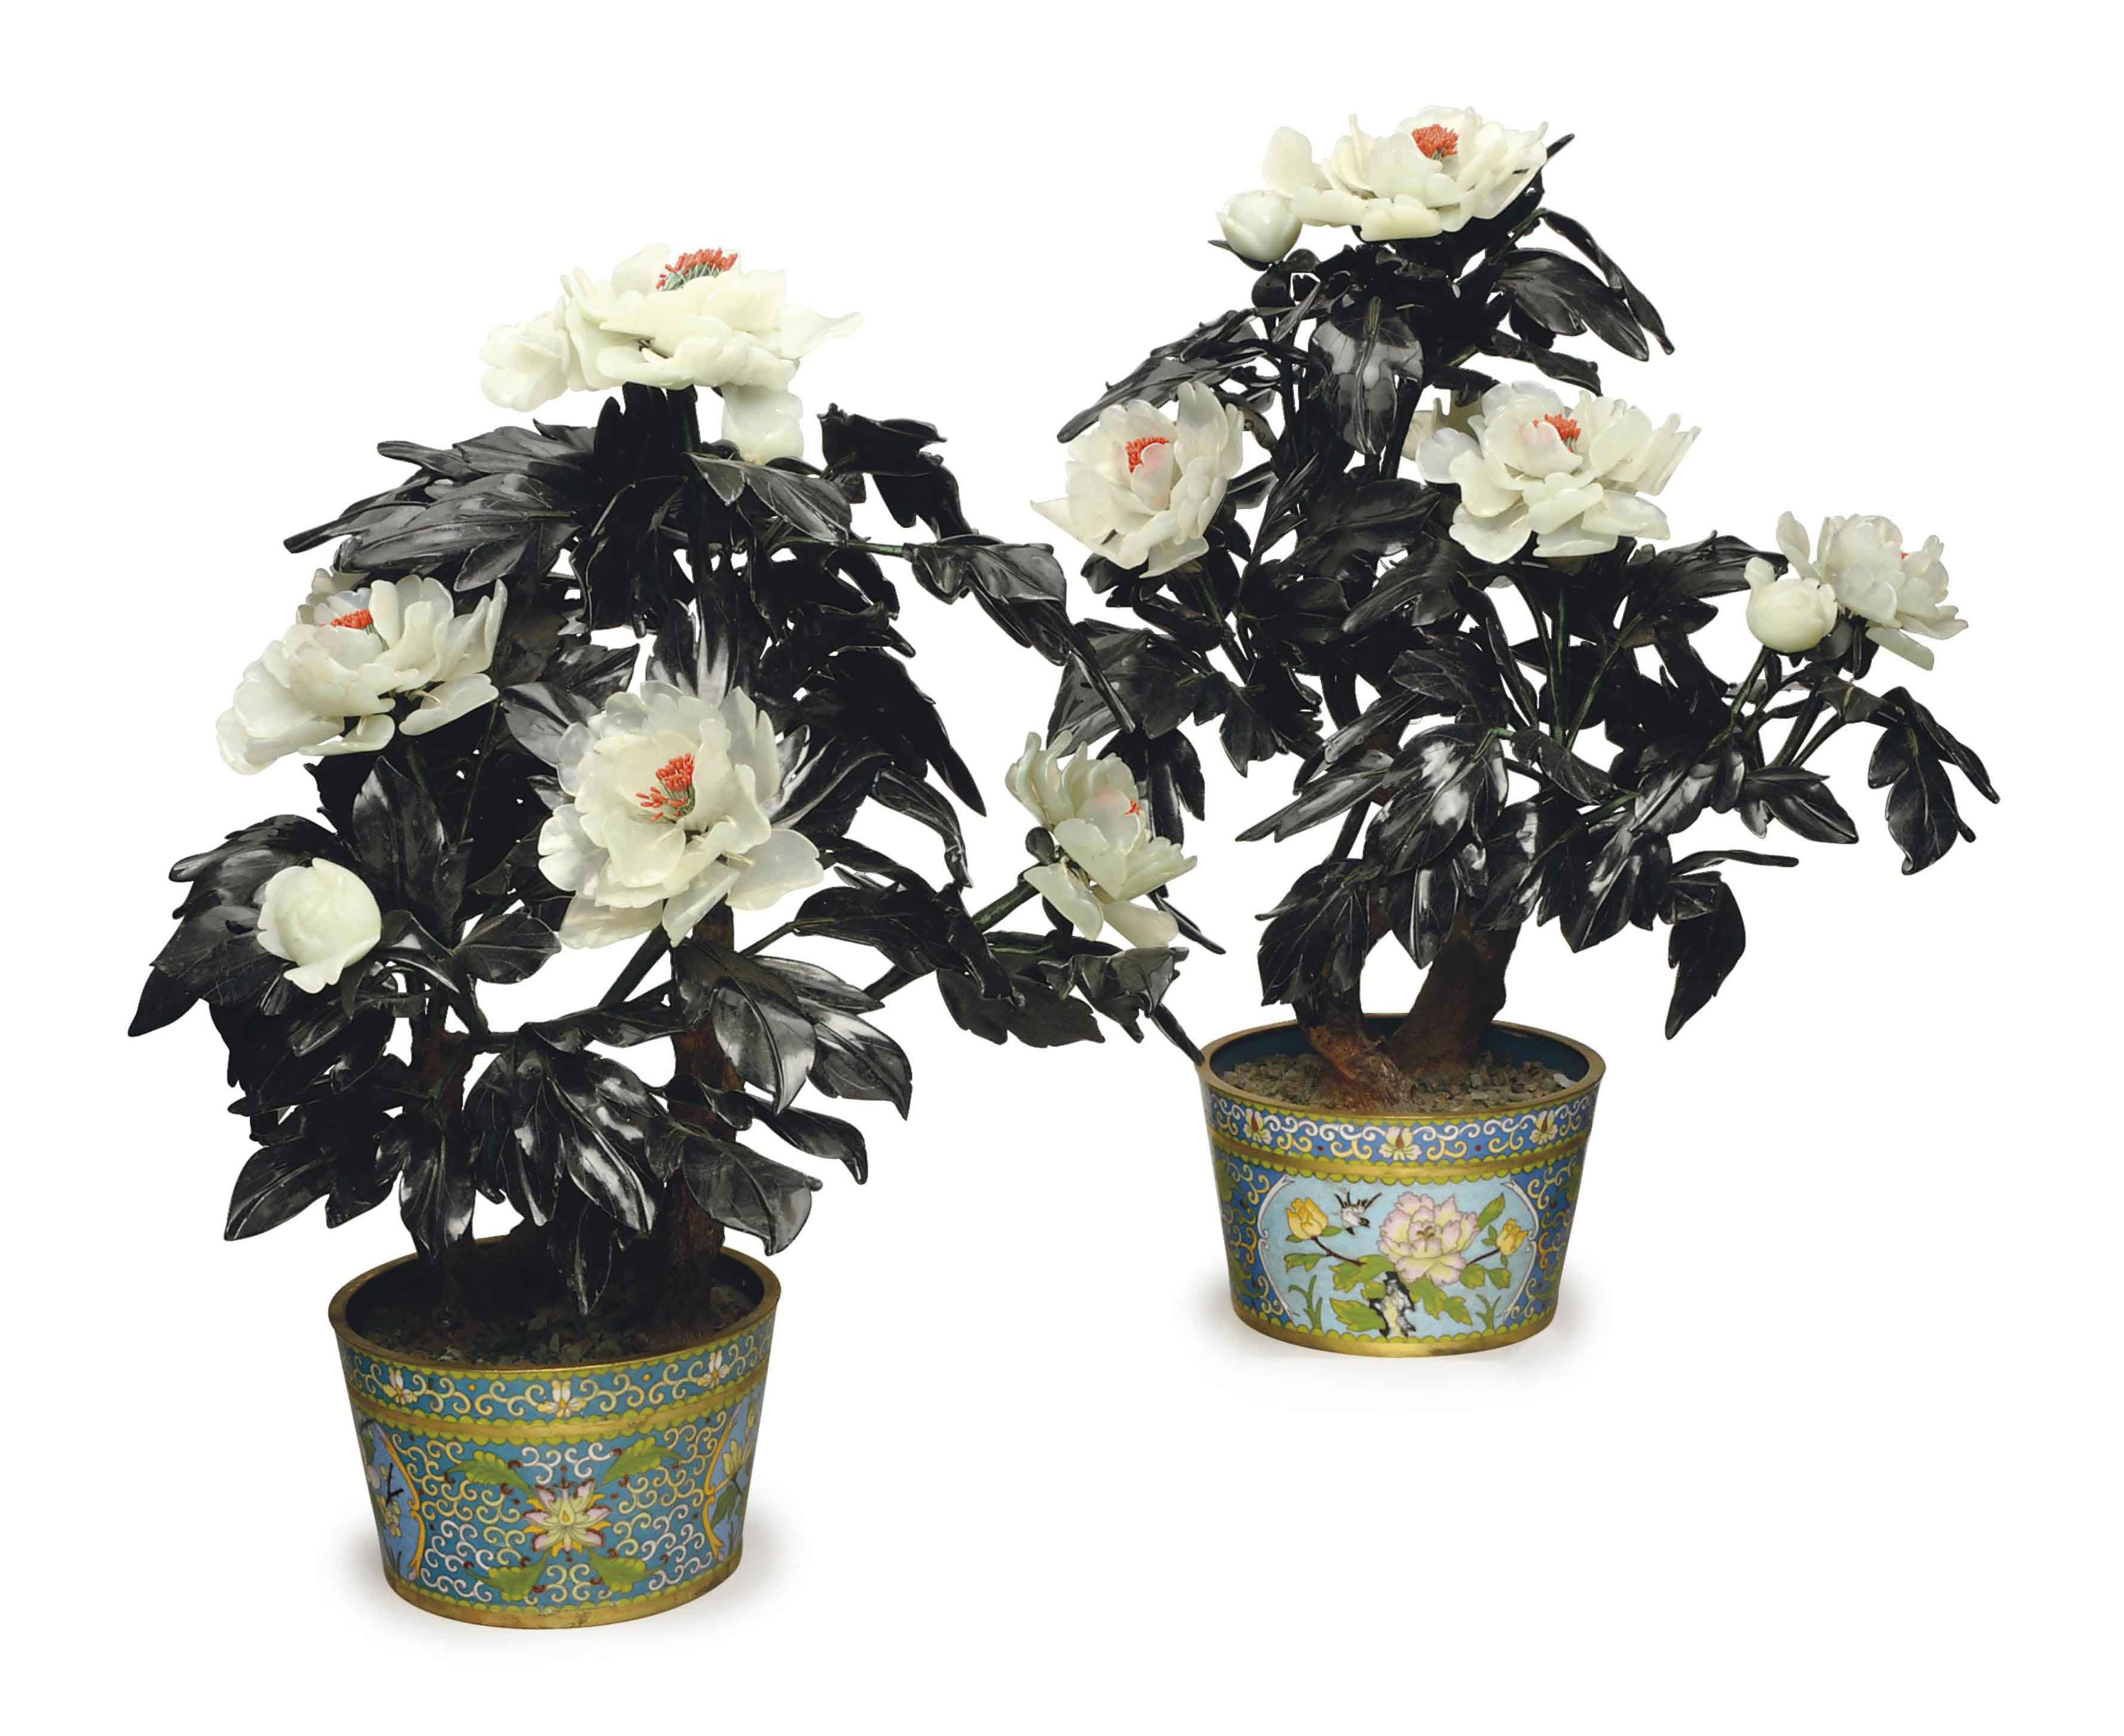 A PAIR OF CHINESE HARDSTONE TREES IN CLOISONNE JARDINIERES,